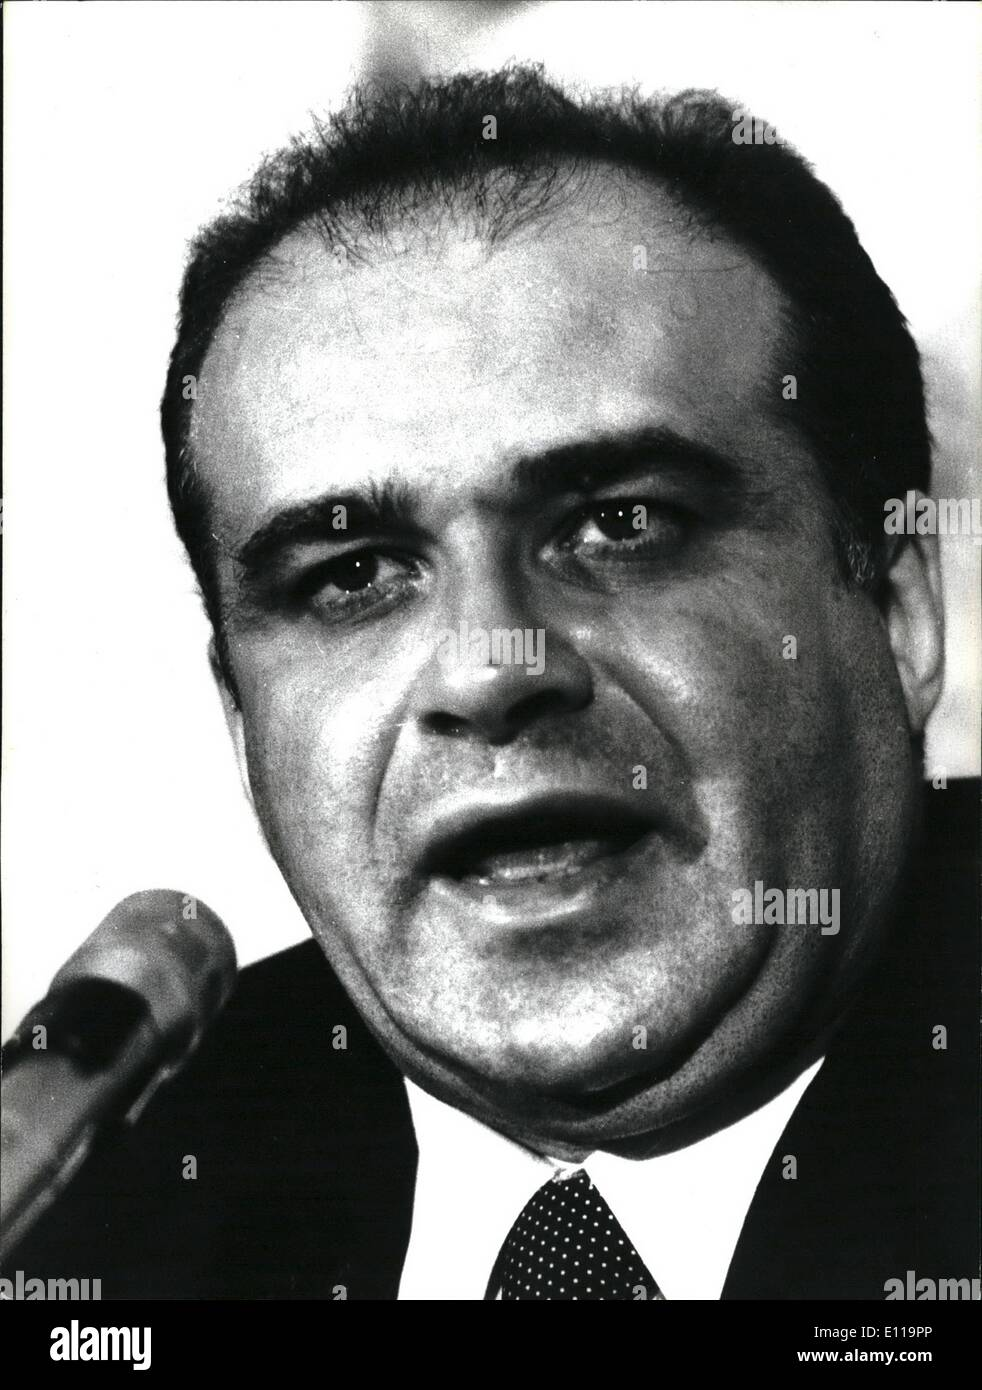 May 05, 1976 - The political leaders engaged for the propaganda for their parties for the next 20 June general election. photo shows Valerie Zemone, leader of the Pli (Liberal party) - Stock Image